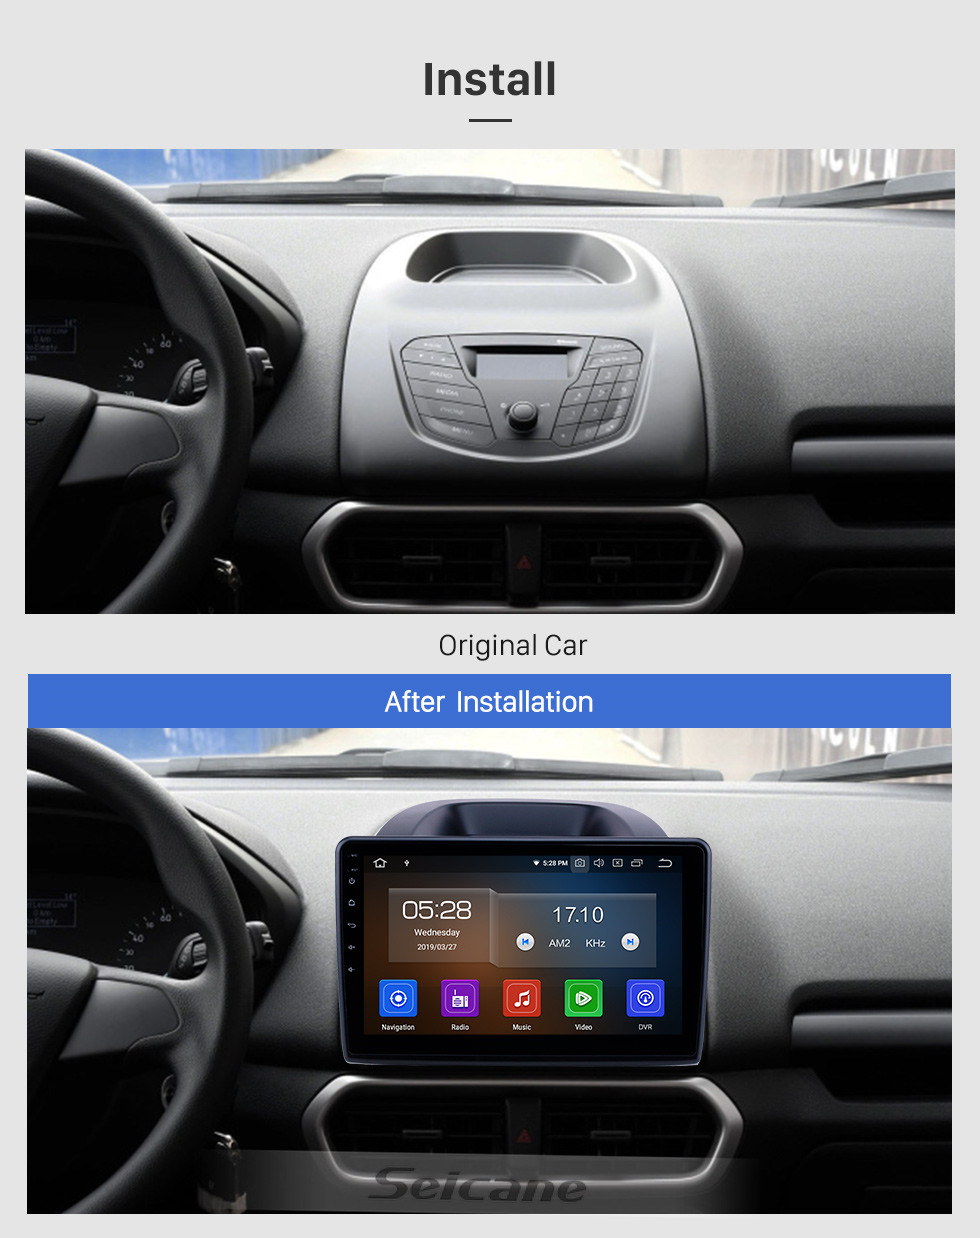 Seicane 10.1 inch Android 10.0 GPS Navigation Radio for 2018-2019 Ford Ecosport Bluetooth HD Touchscreen Carplay support DVR SWC